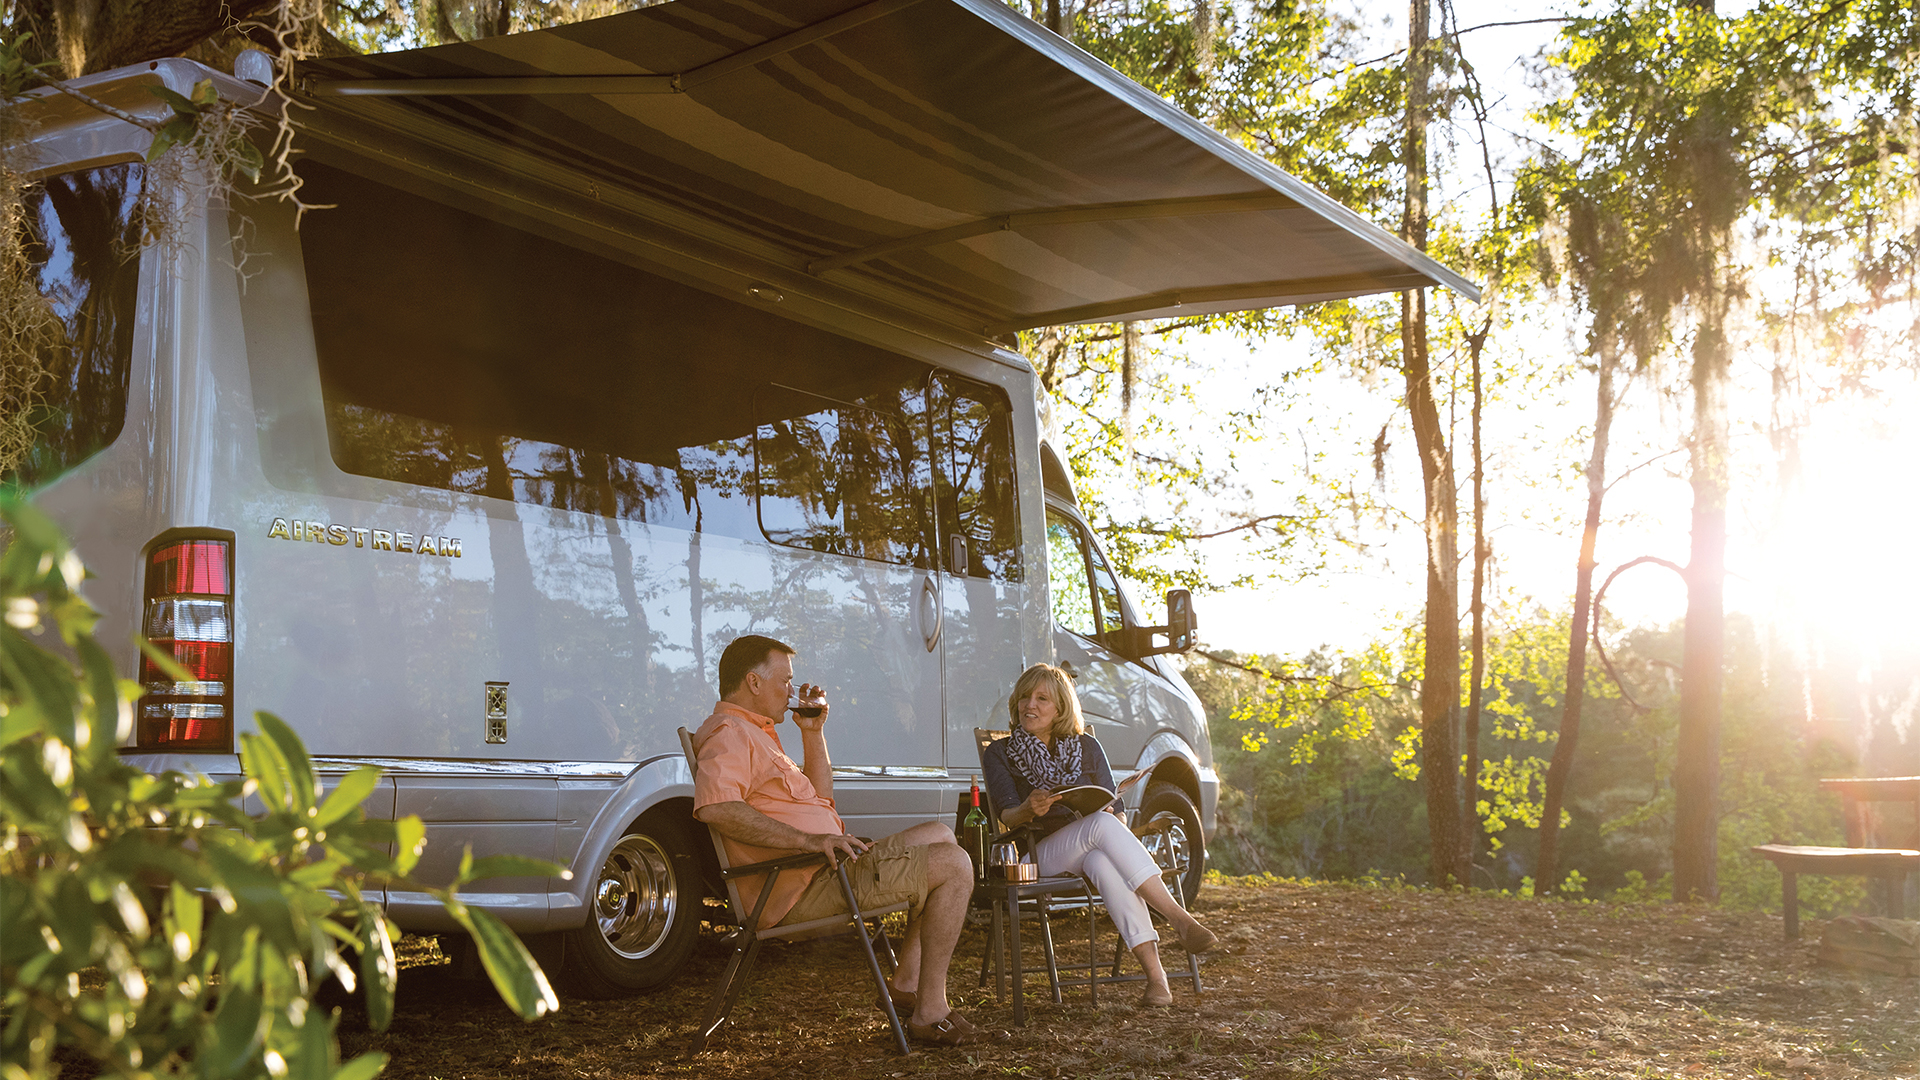 Airstream-Atlas-Living-from-Anywhere-with-Connectivity